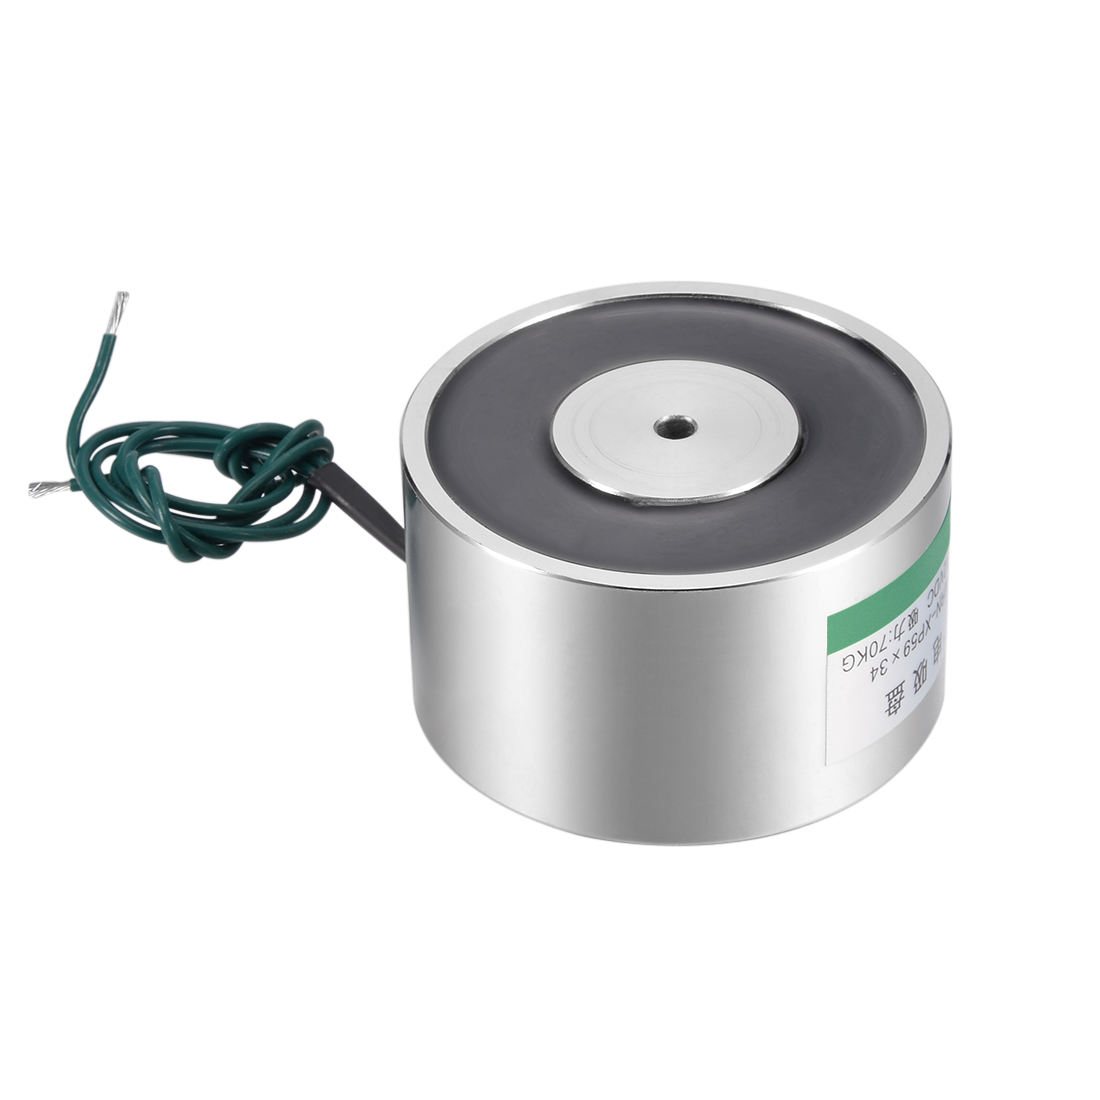 59mm x 34mm DC12V 700N Sucking Disc Solenoid Lift Holding Electromagnet